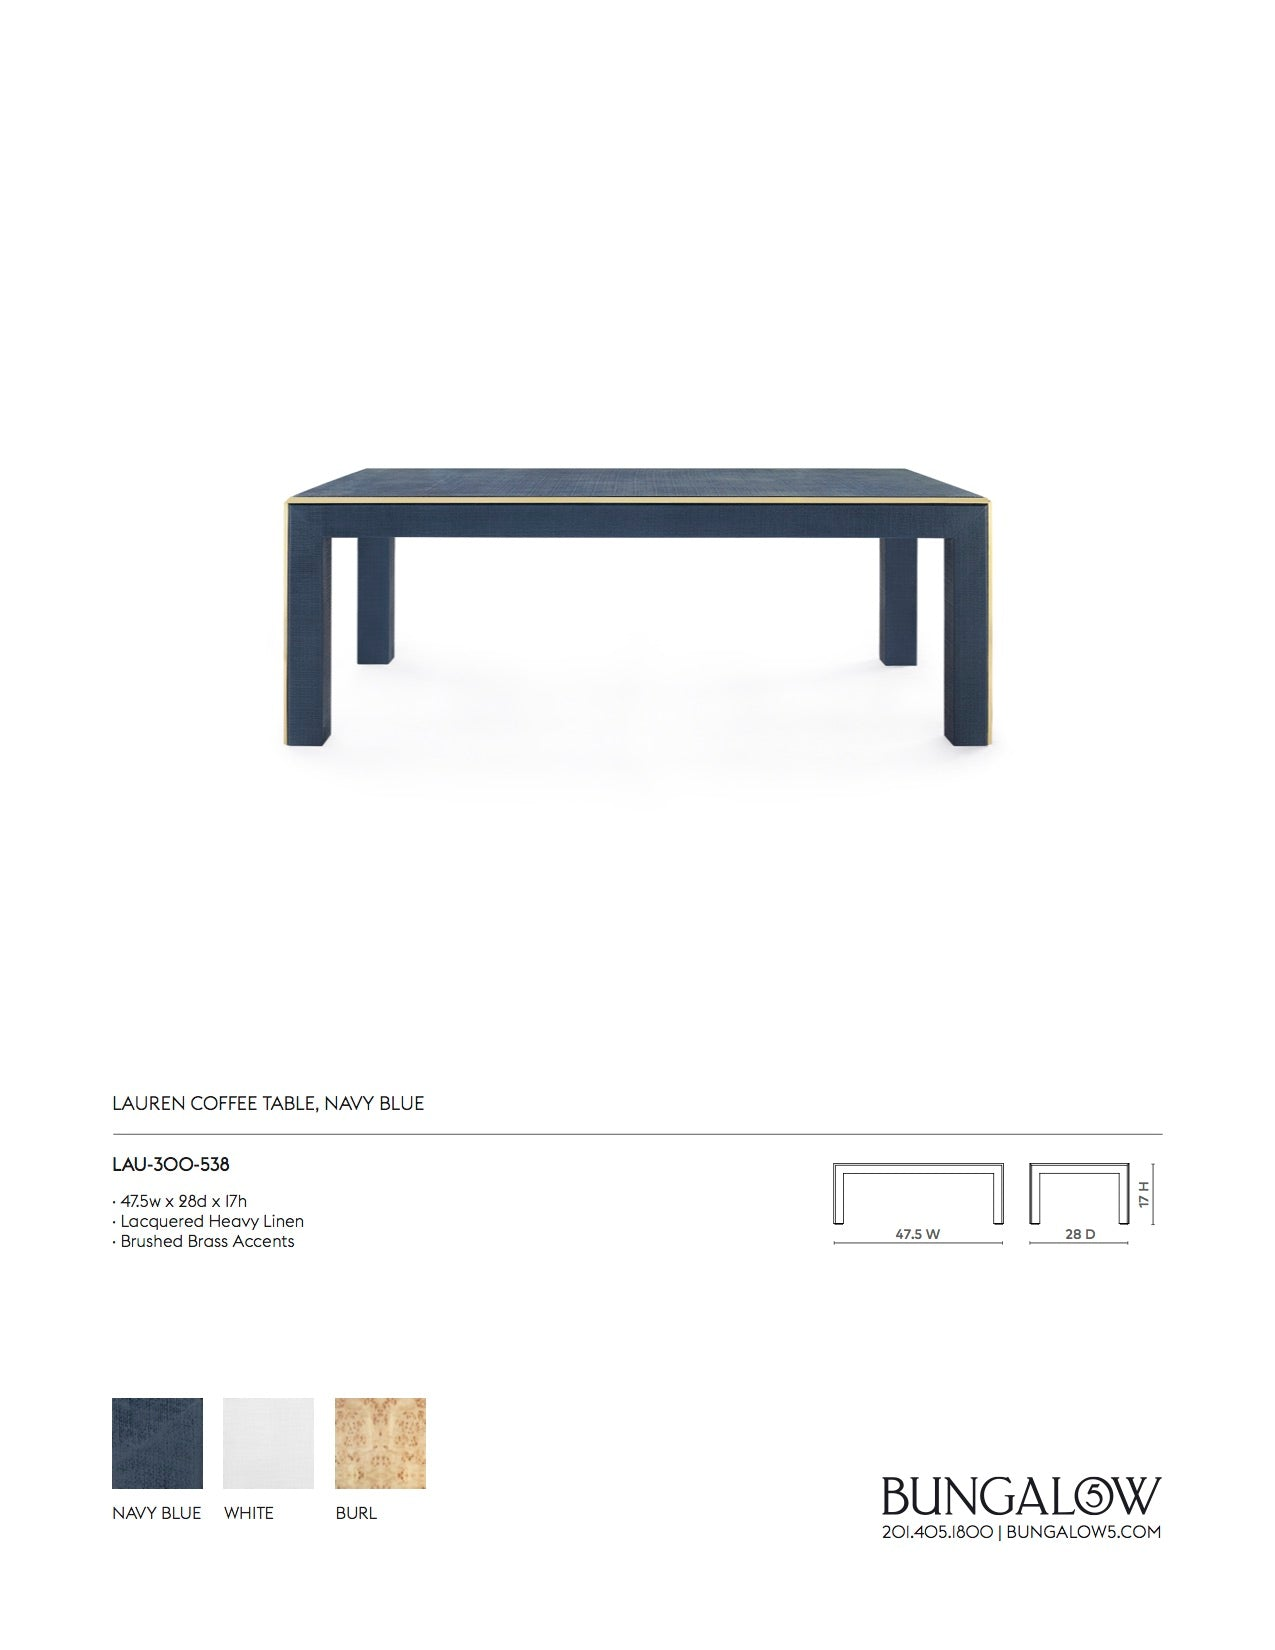 Bungalow 5 Lauren Coffee Table Navy Blue Tearsheet